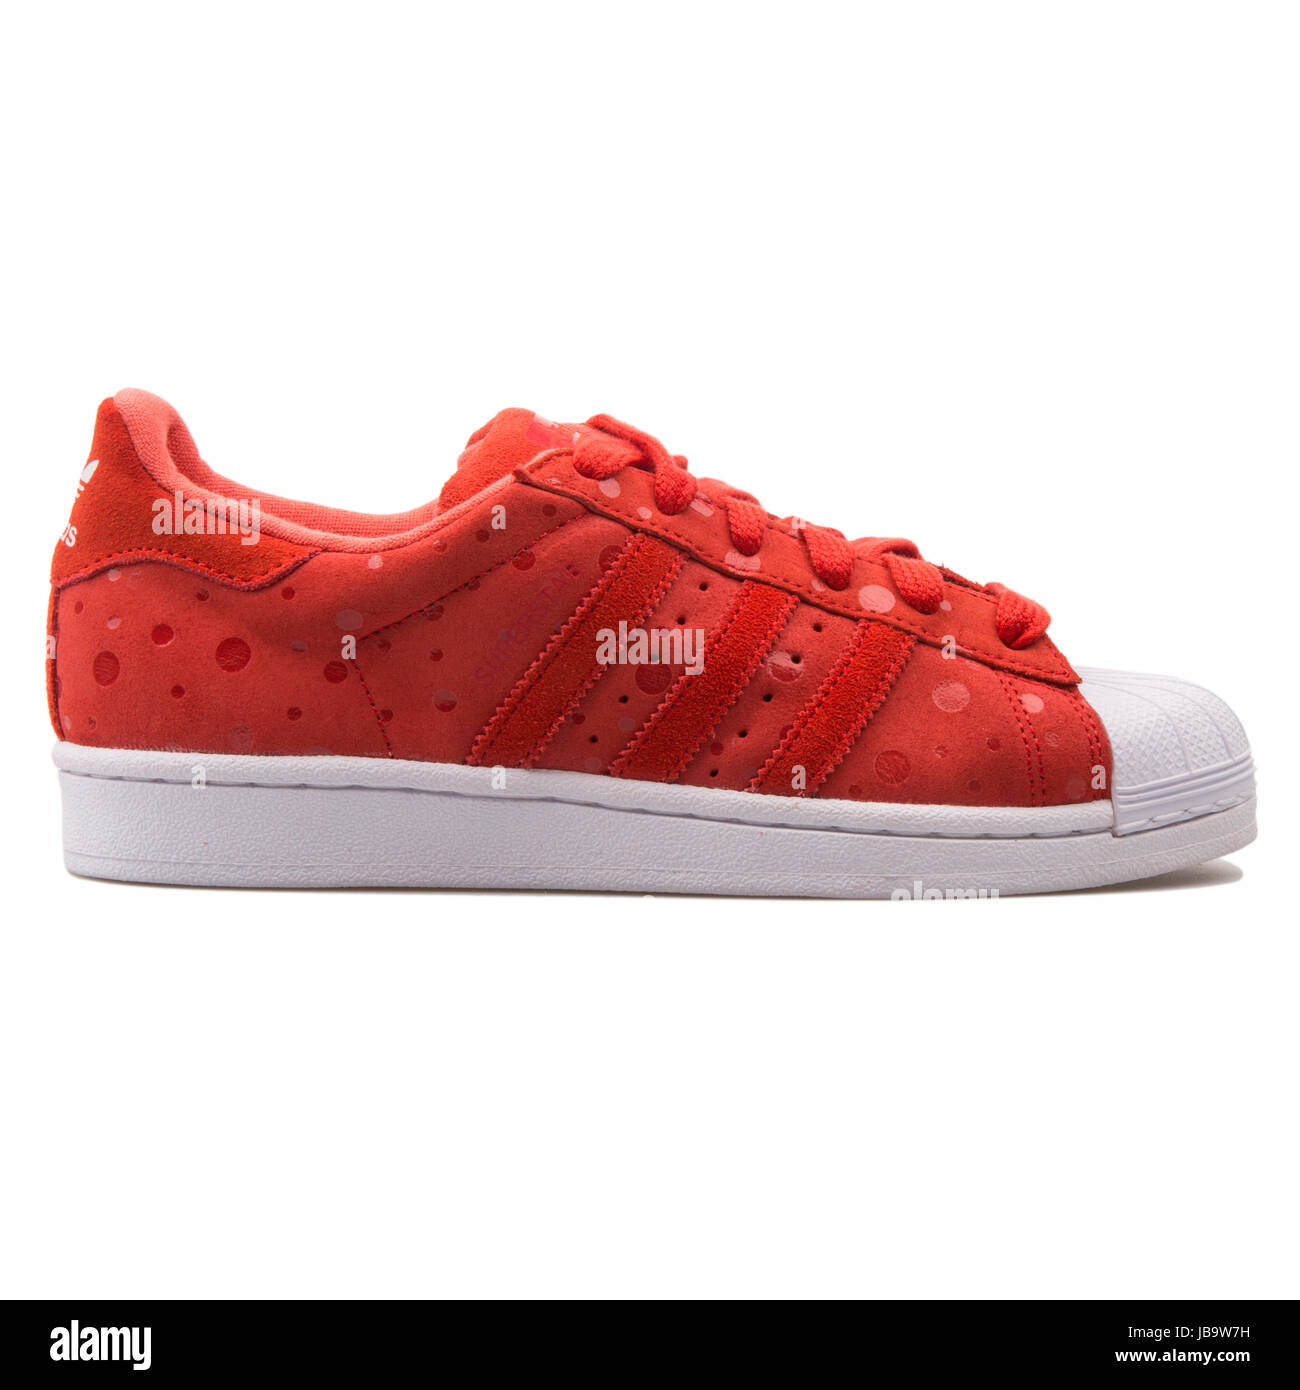 cea3dcd9 Adidas Superstar W Tomato Red Women's Sports Shoes - S77411 Stock ...